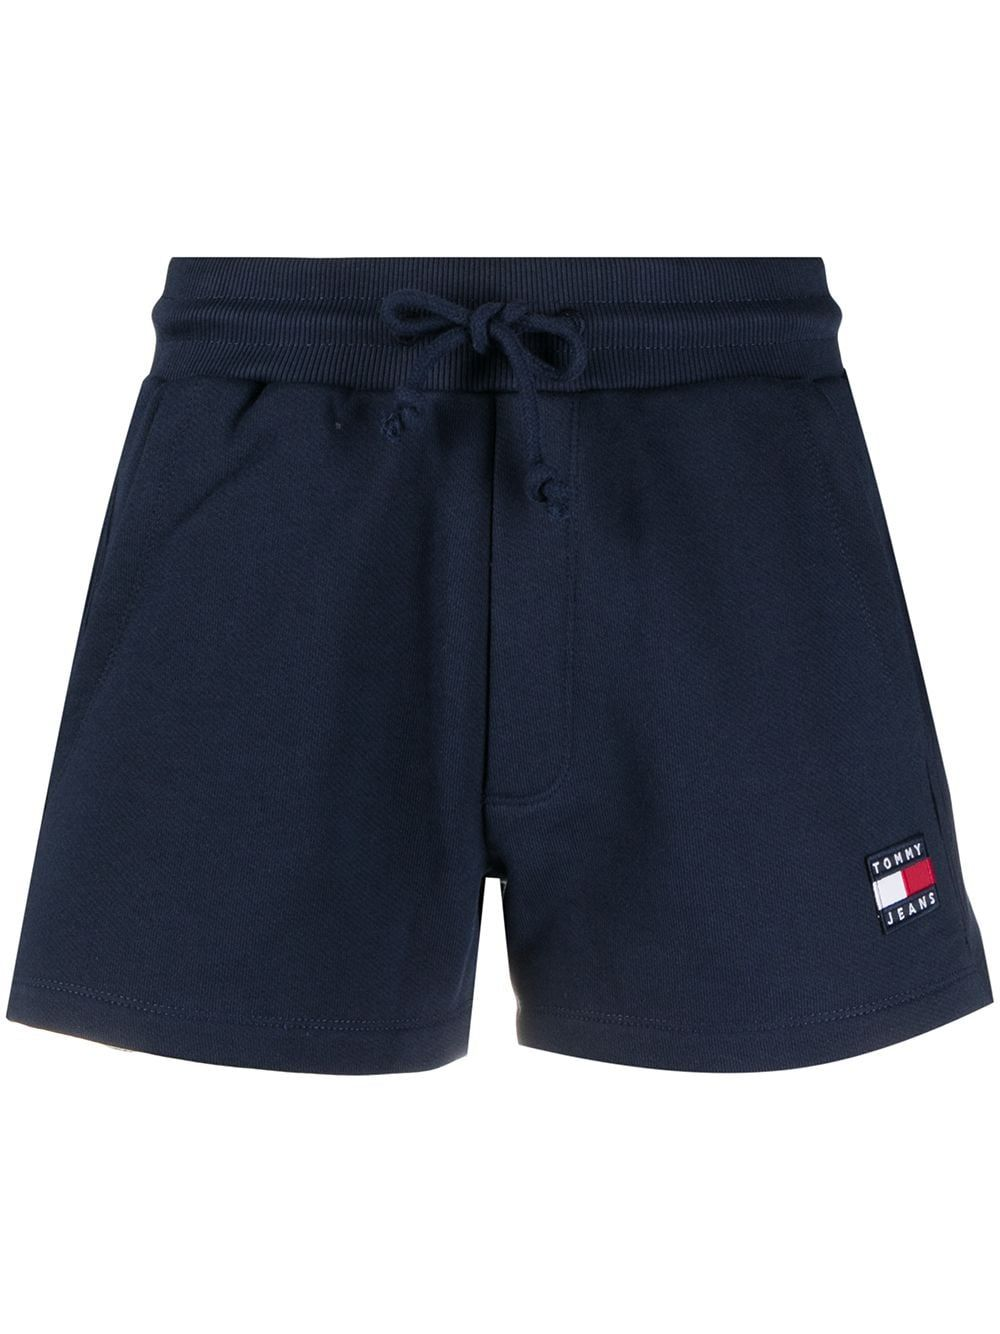 Tommy Hilfiger TOMMY HILFIGER WOMEN'S BLUE COTTON SHORTS